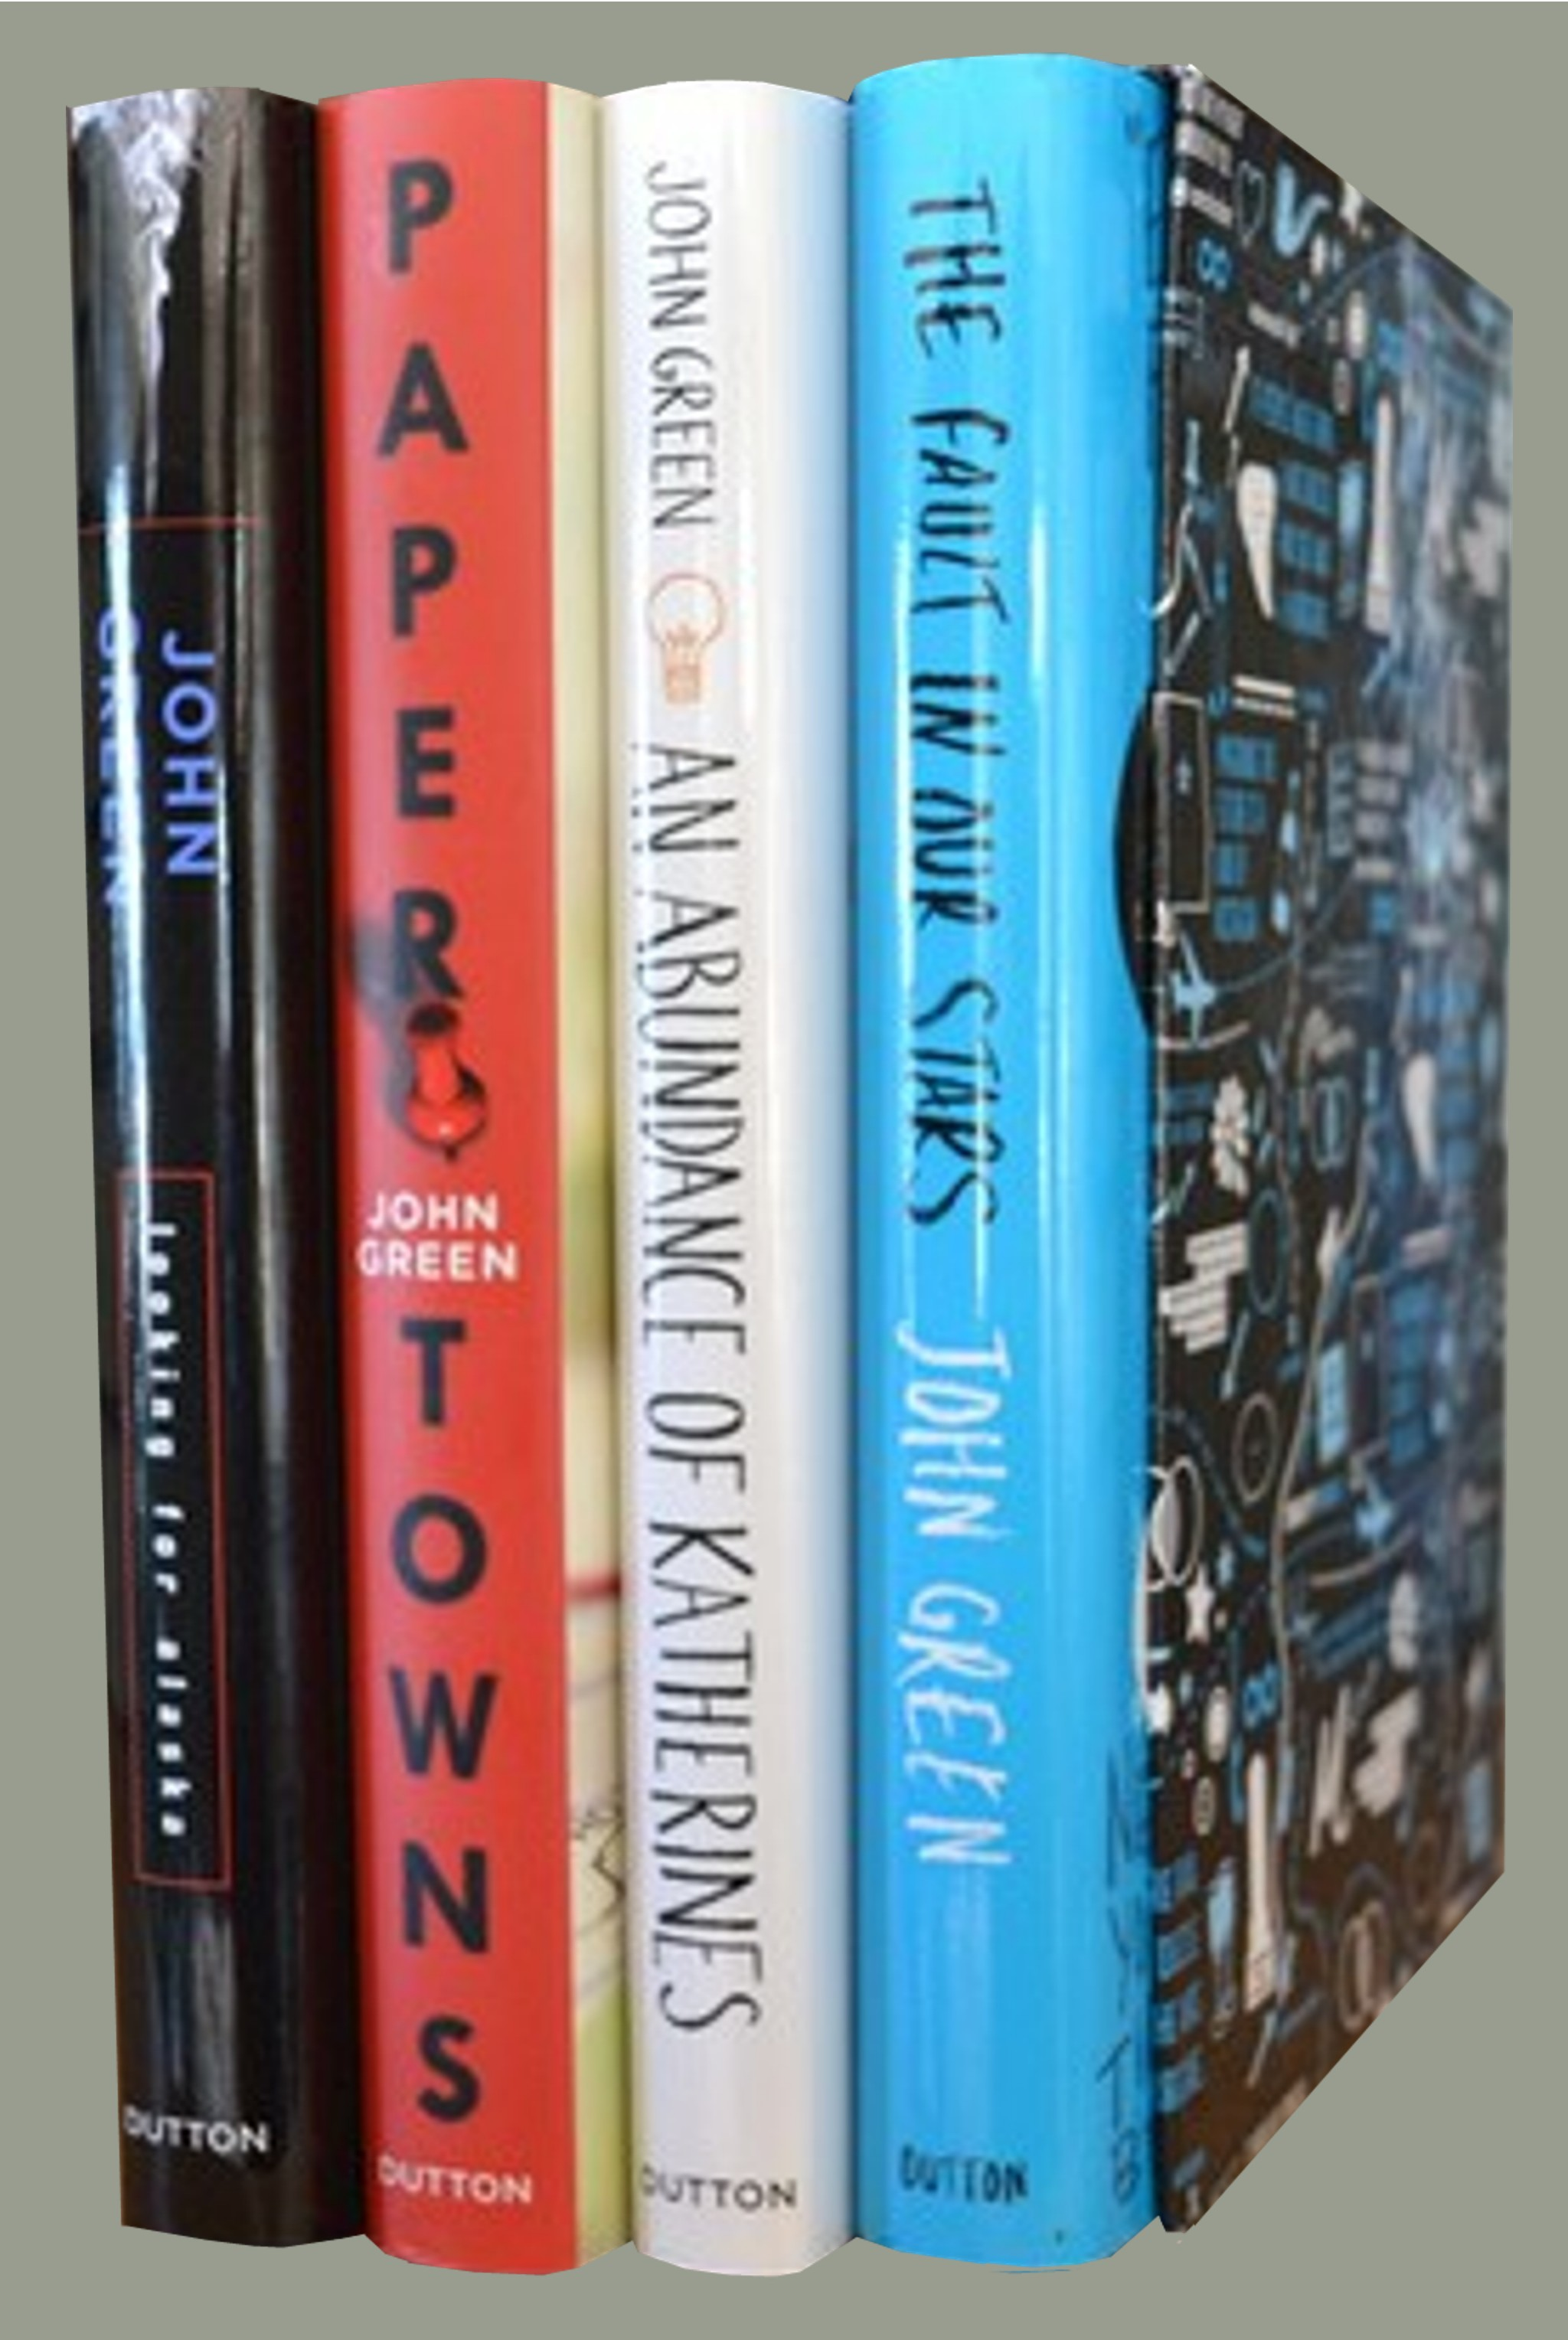 Image for John Green 4 Book Box Set   **Signed 4X + Photo** [The Fault in Our Stars, Looking for Alaska, An Abundance of Katherines, and Paper Towns]